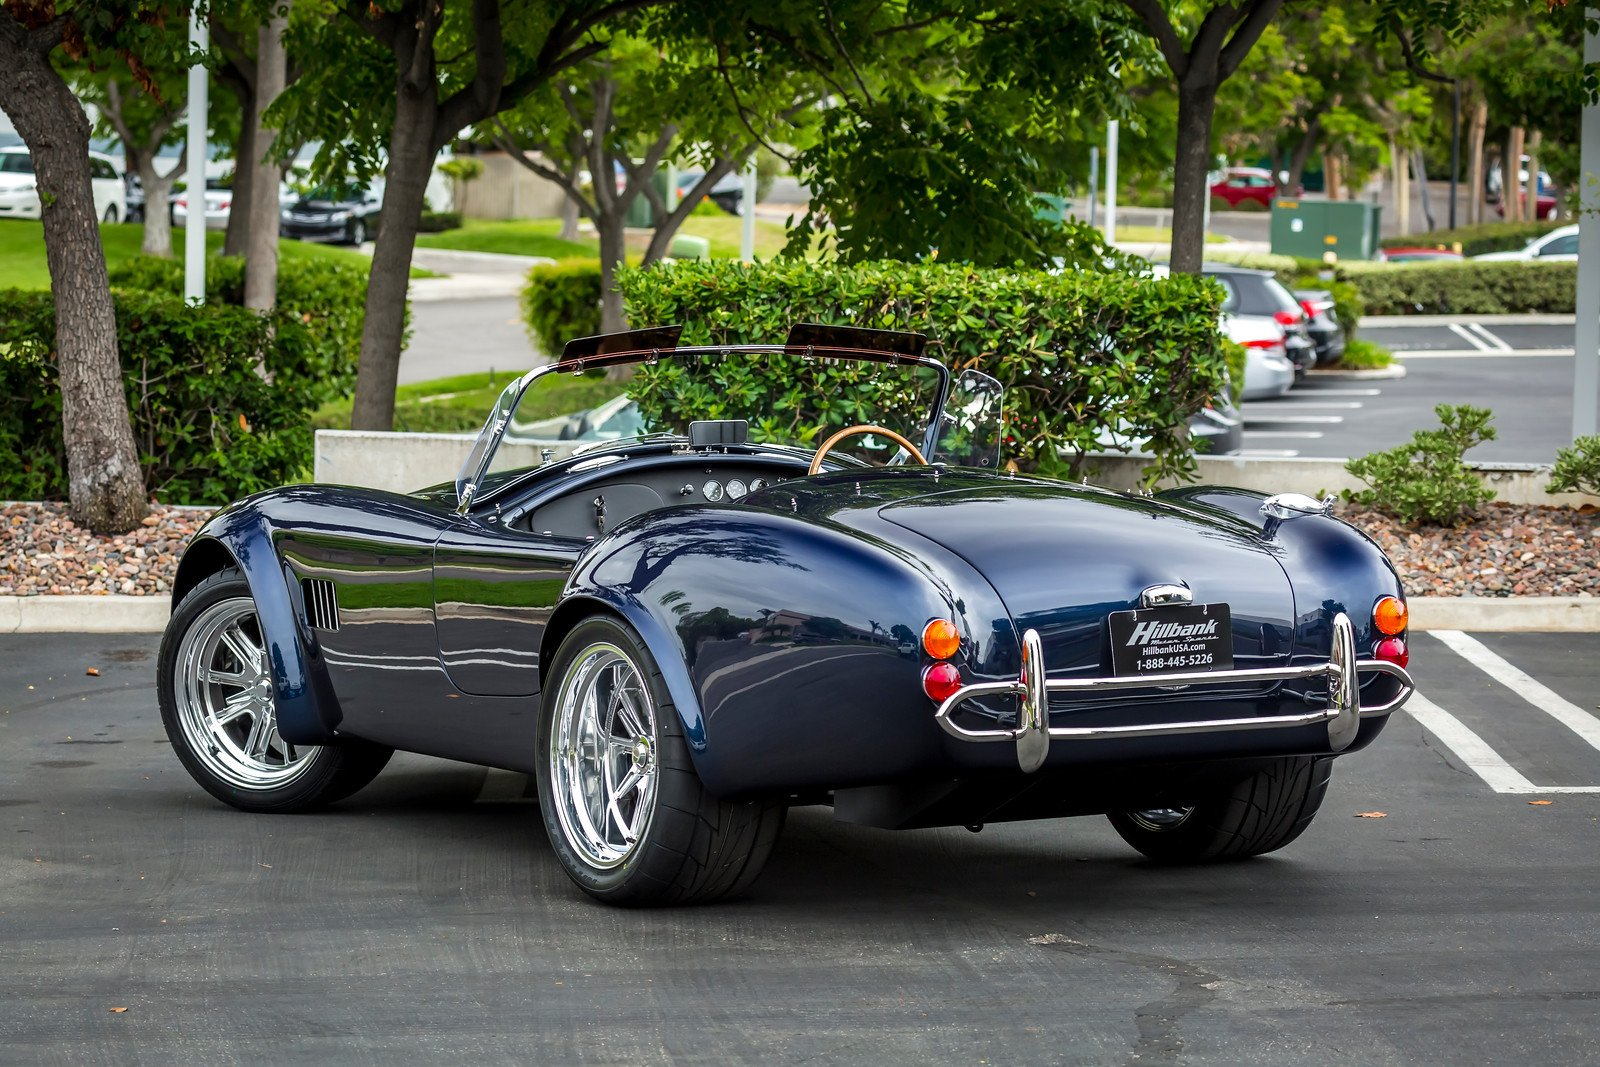 1965 Shelby Cobra-Replica for sale 100736647 ... & Shelby Cobra-Replica Classics for Sale - Classics on Autotrader markmcfarlin.com